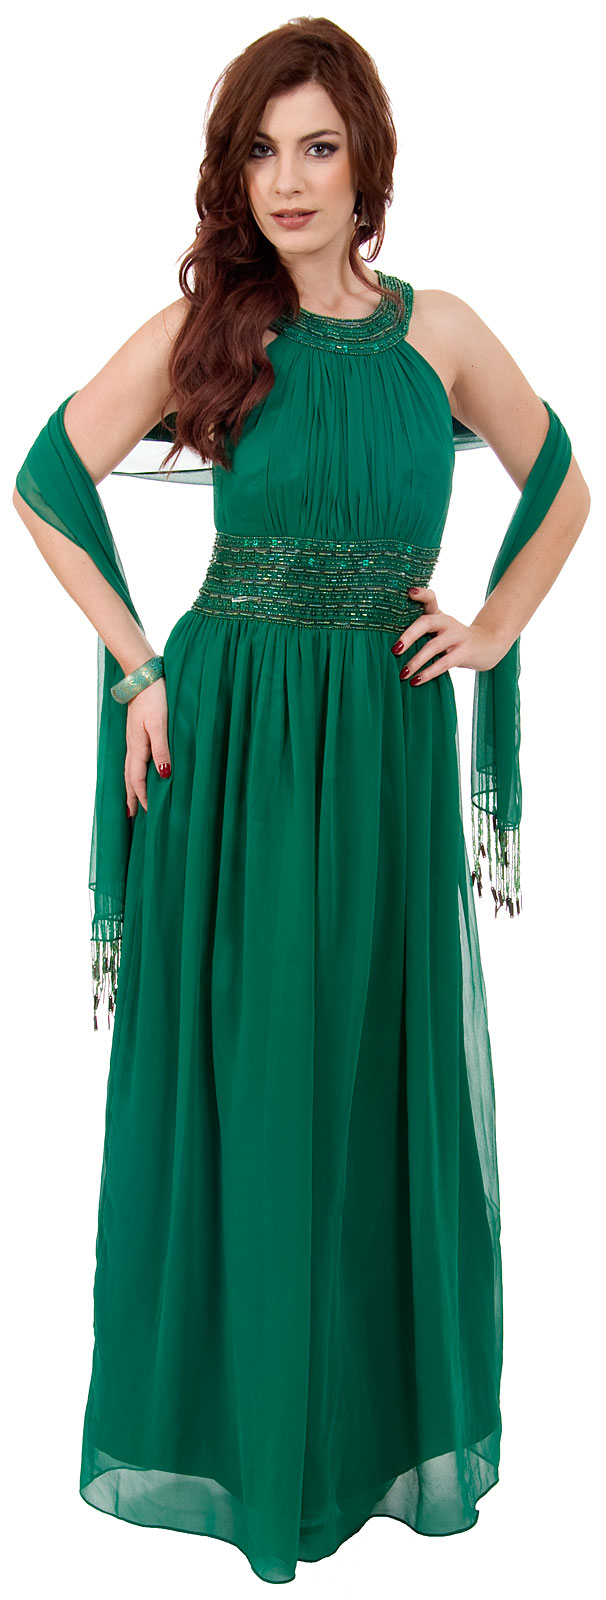 Image of Roman Empire Long Formal Dress With Beaded Straps & Waist in alternative picture